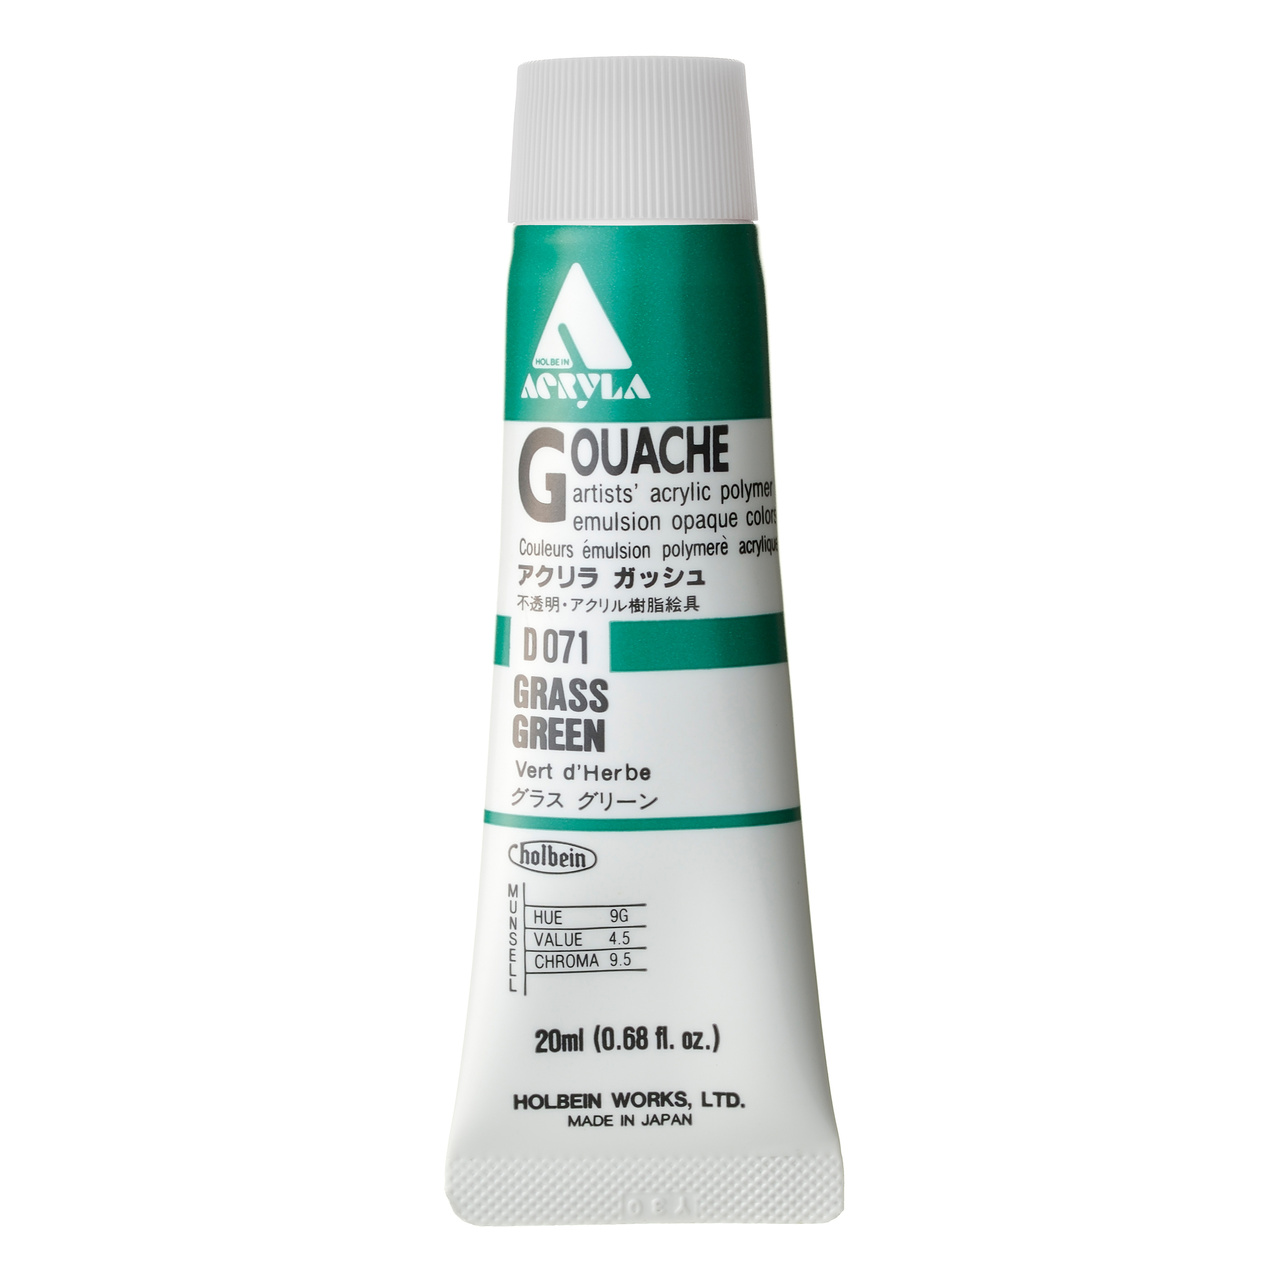 ACRYLA GOUACHE 20ML GRASS GREEN